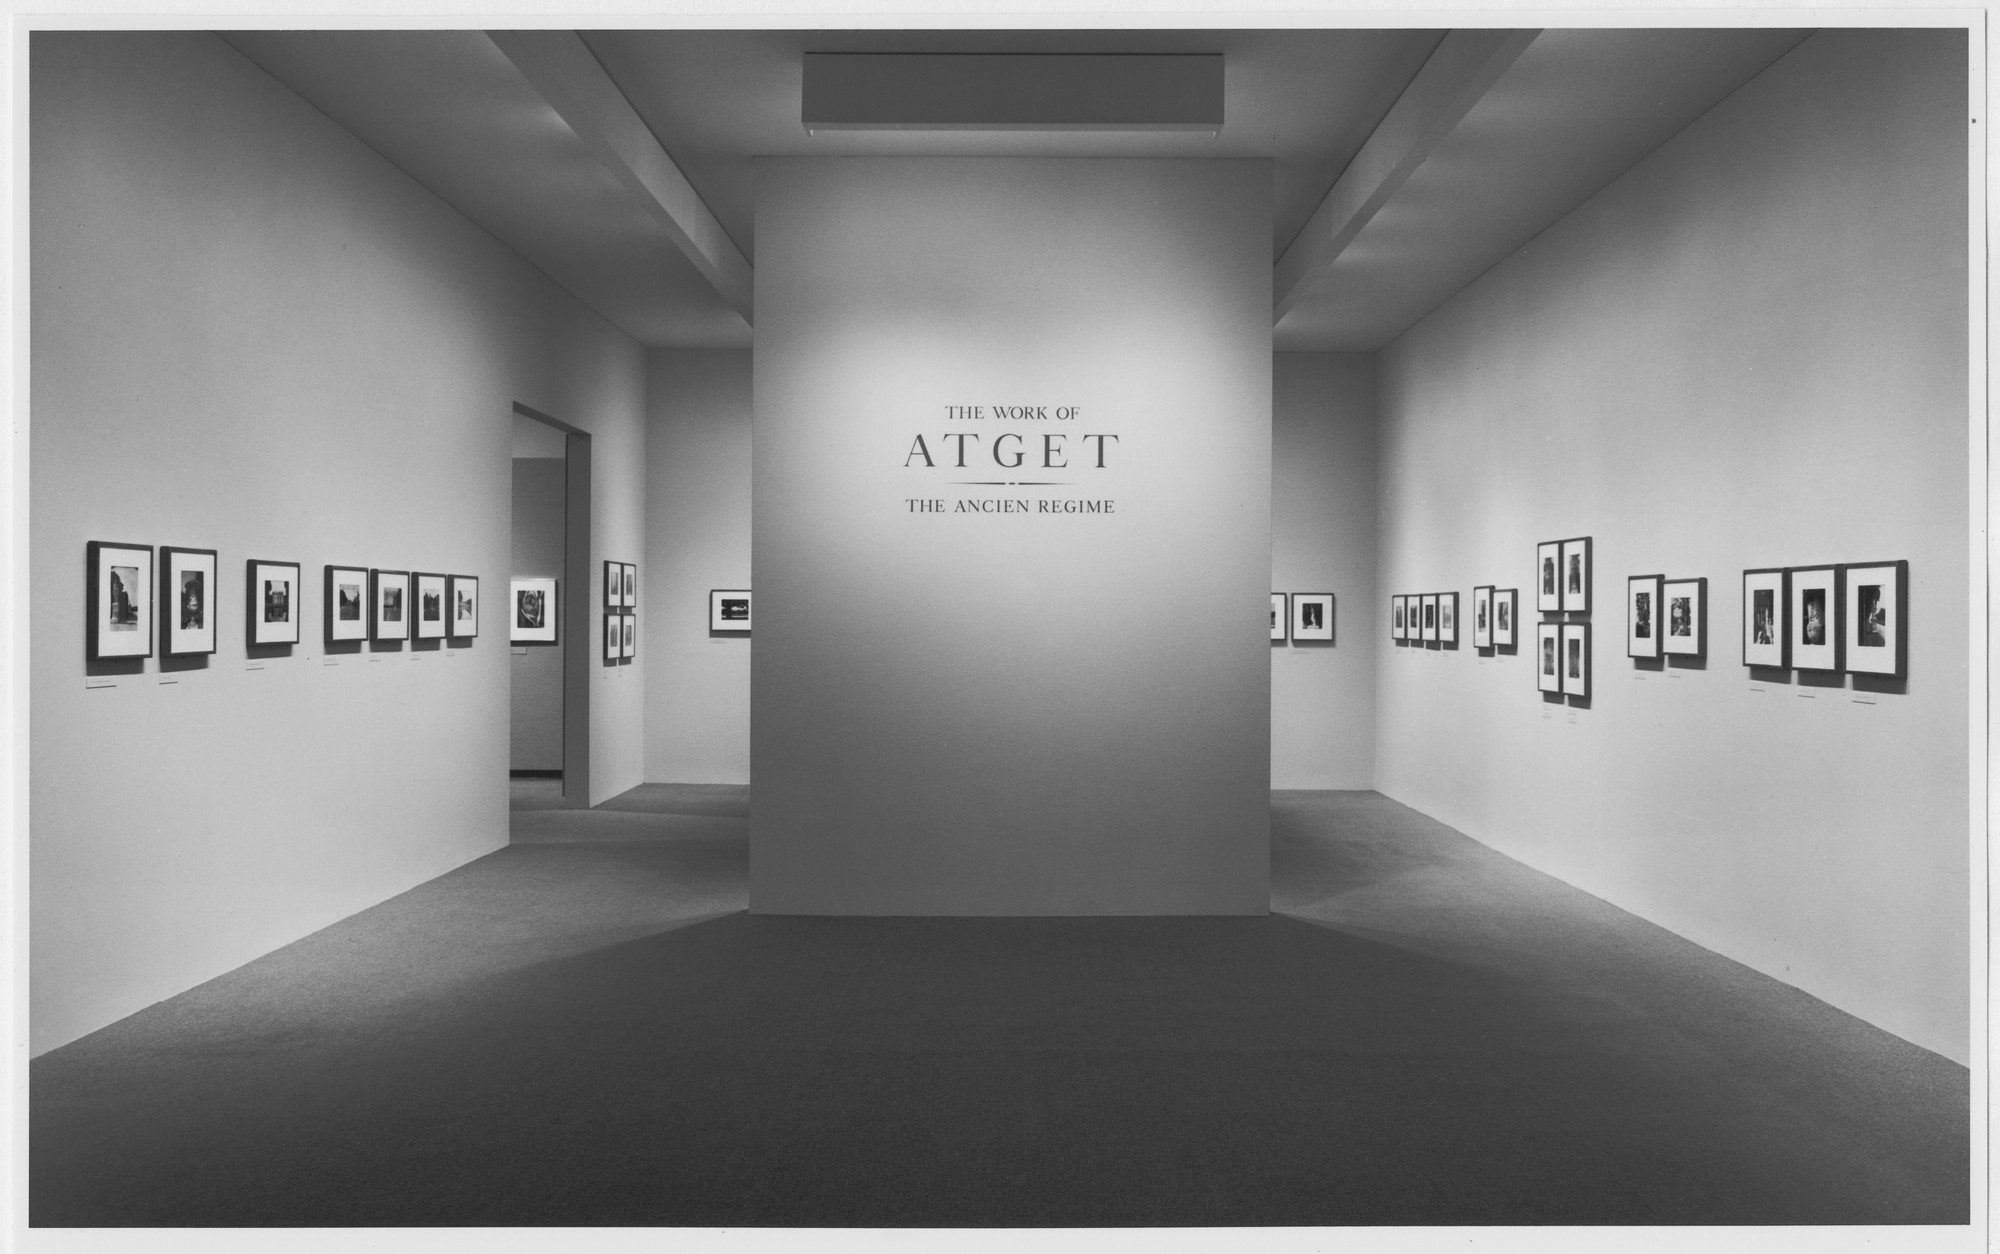 "Installation view of the exhibition, ""The Work of Atget: Ancien Regime"" March 14, 1985–May 14, 1985. Photographic Archive. The Museum of Modern Art Archives, New York. IN1394.1. Photograph by Katherine Keller."